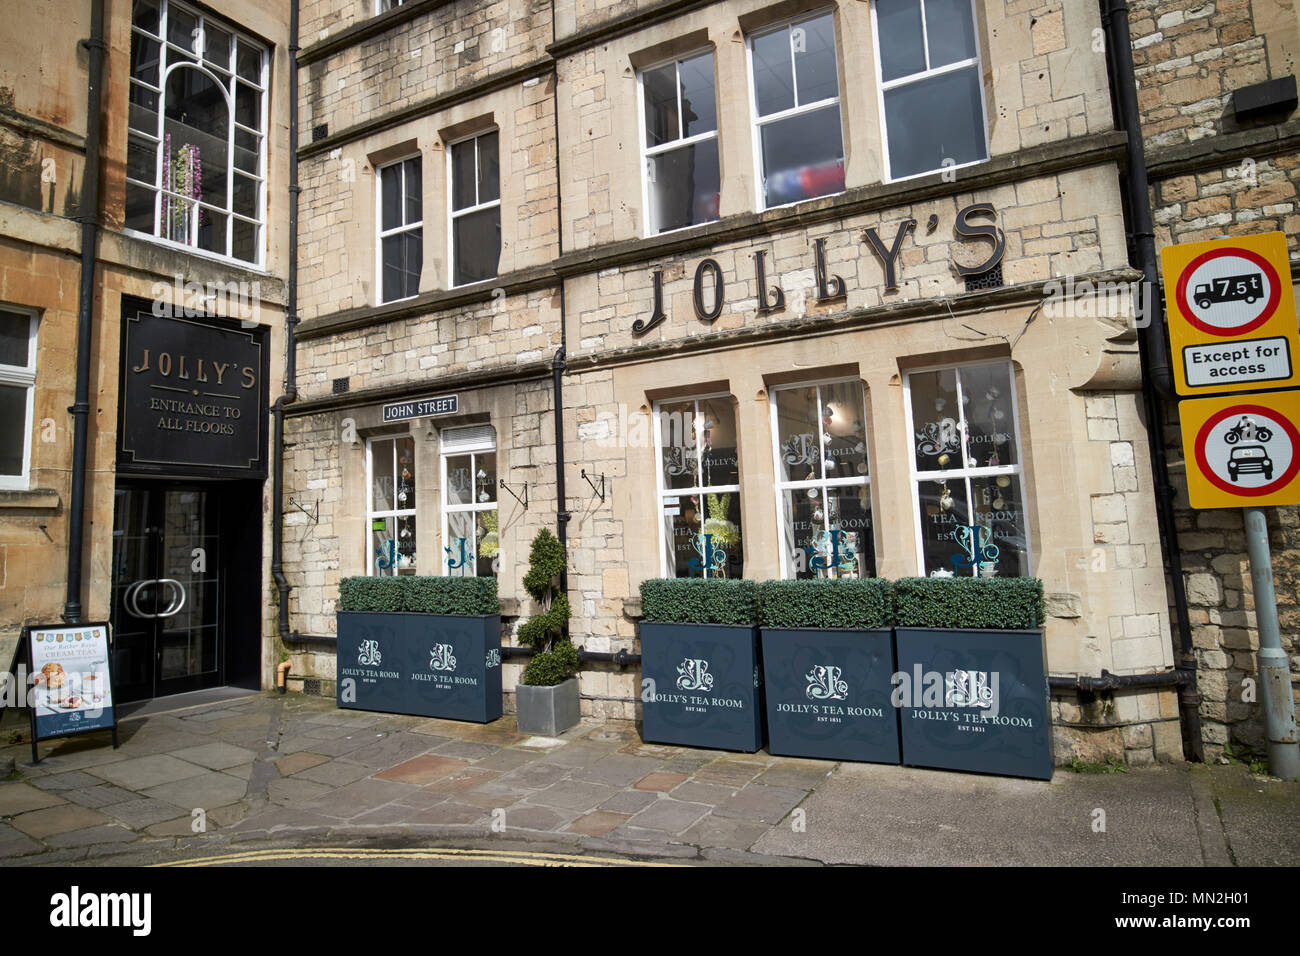 Bath Store Stock Photos & Bath Store Stock Images - Alamy